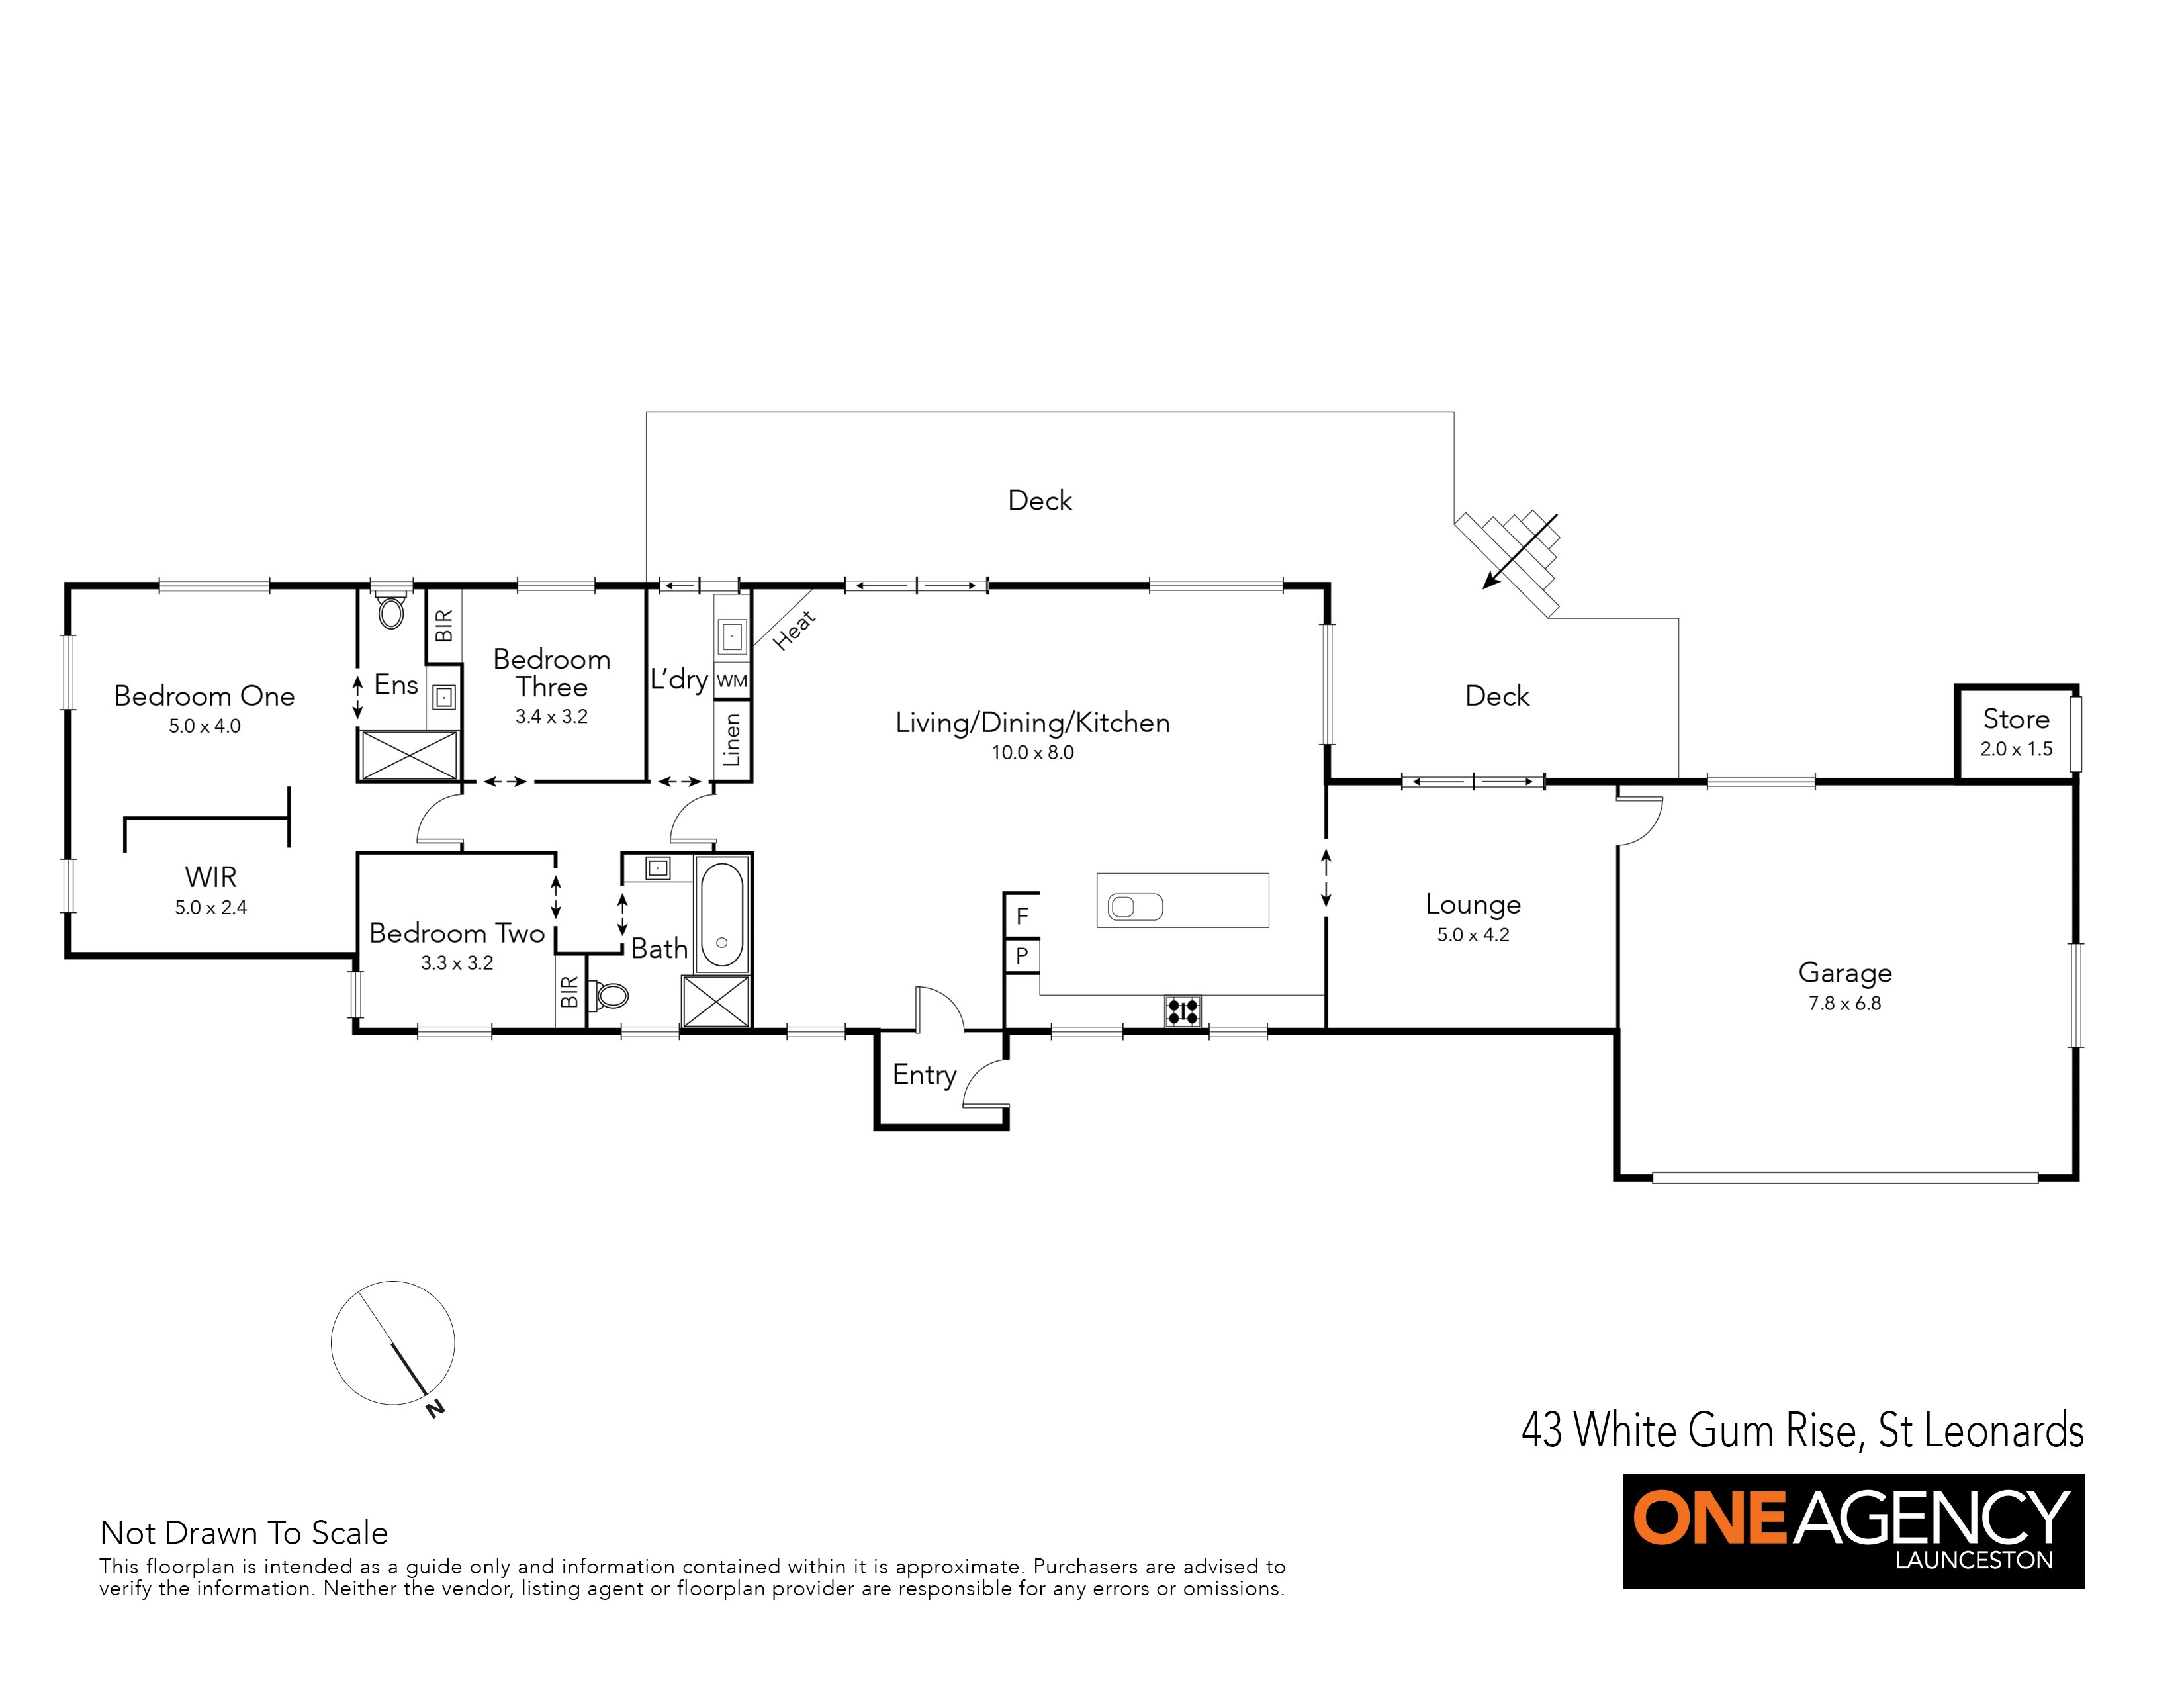 43 White Gum Rise One Agency Launceston